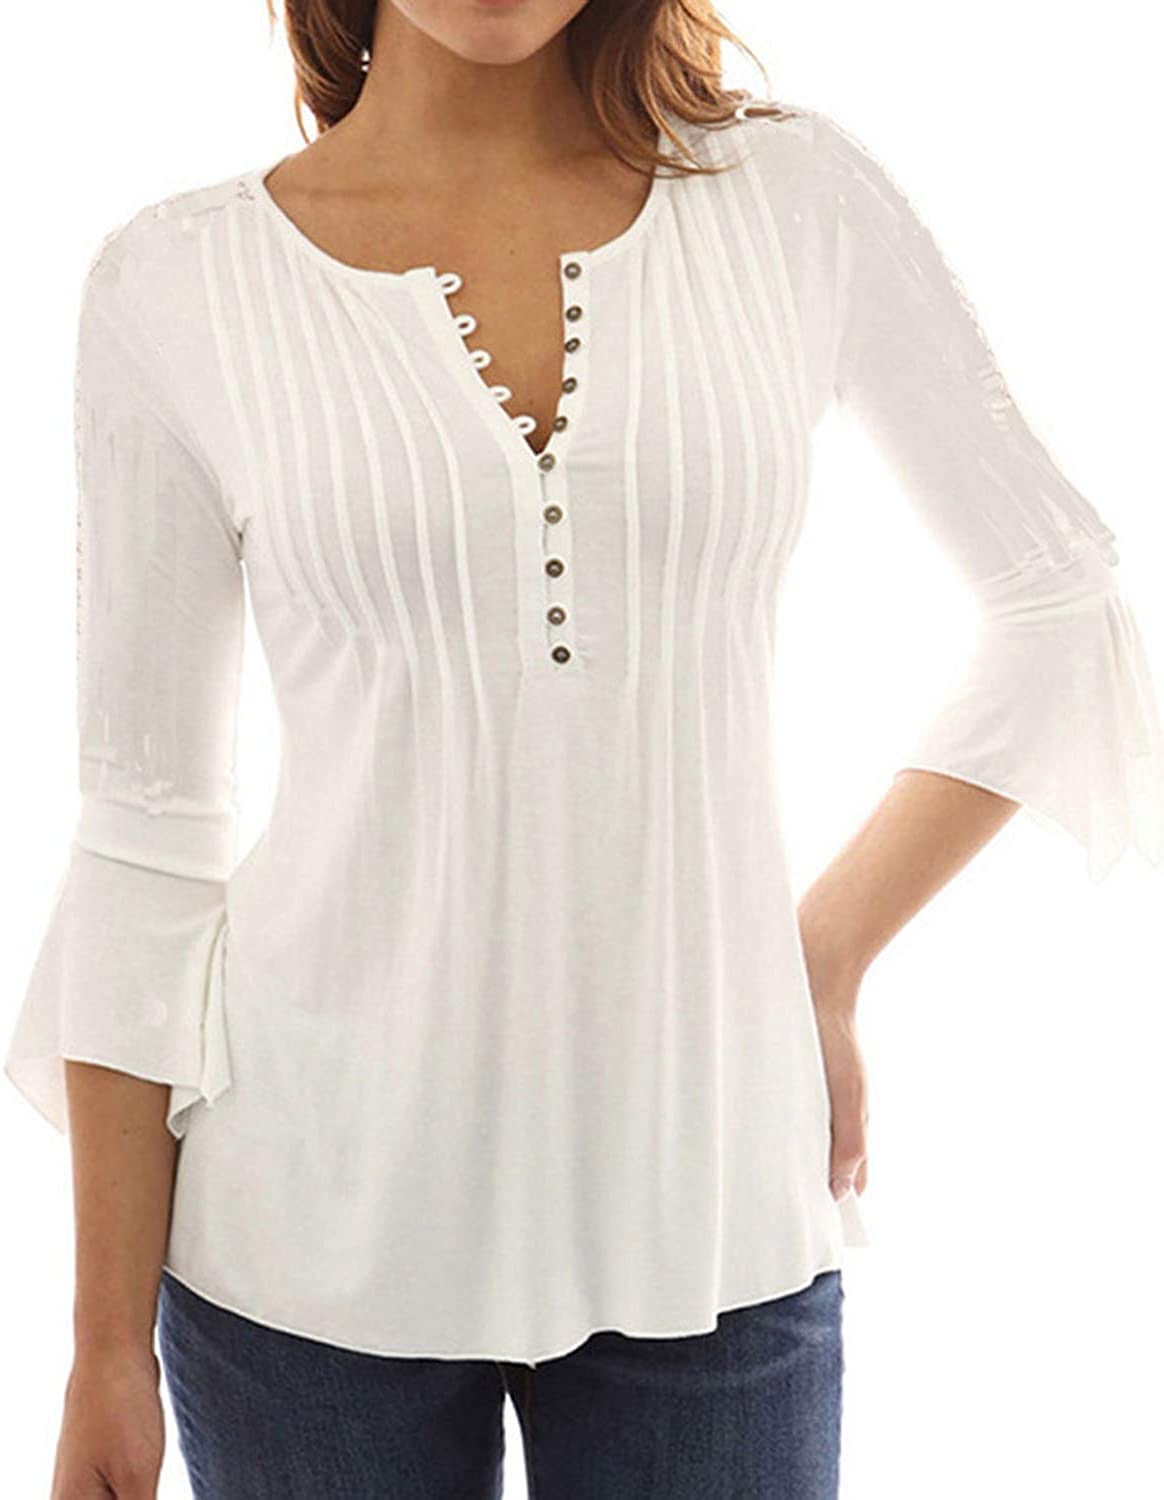 Celmia Women's Fashion Long Sleeve Peasant Tops Ruffled Cuff Buttons Down Blouse